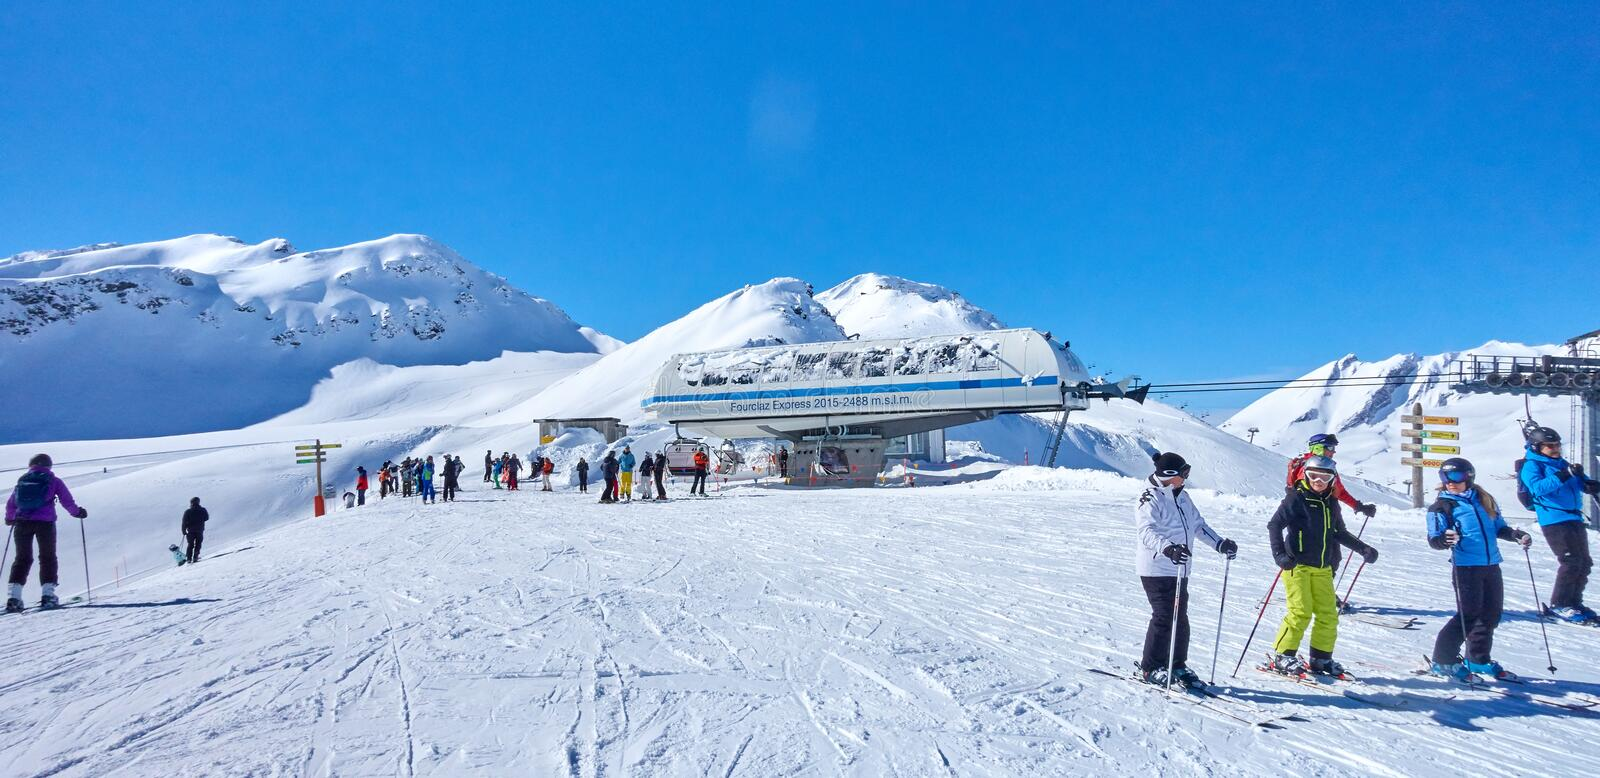 LA THUILE, ITALY - MARCH 4, 2018: Skiing on the San Bernardo Pas. S on 4 March 2018 in La Thuile, Italy. The San Bernardo Pass routes connect the ski areas in royalty free stock photo